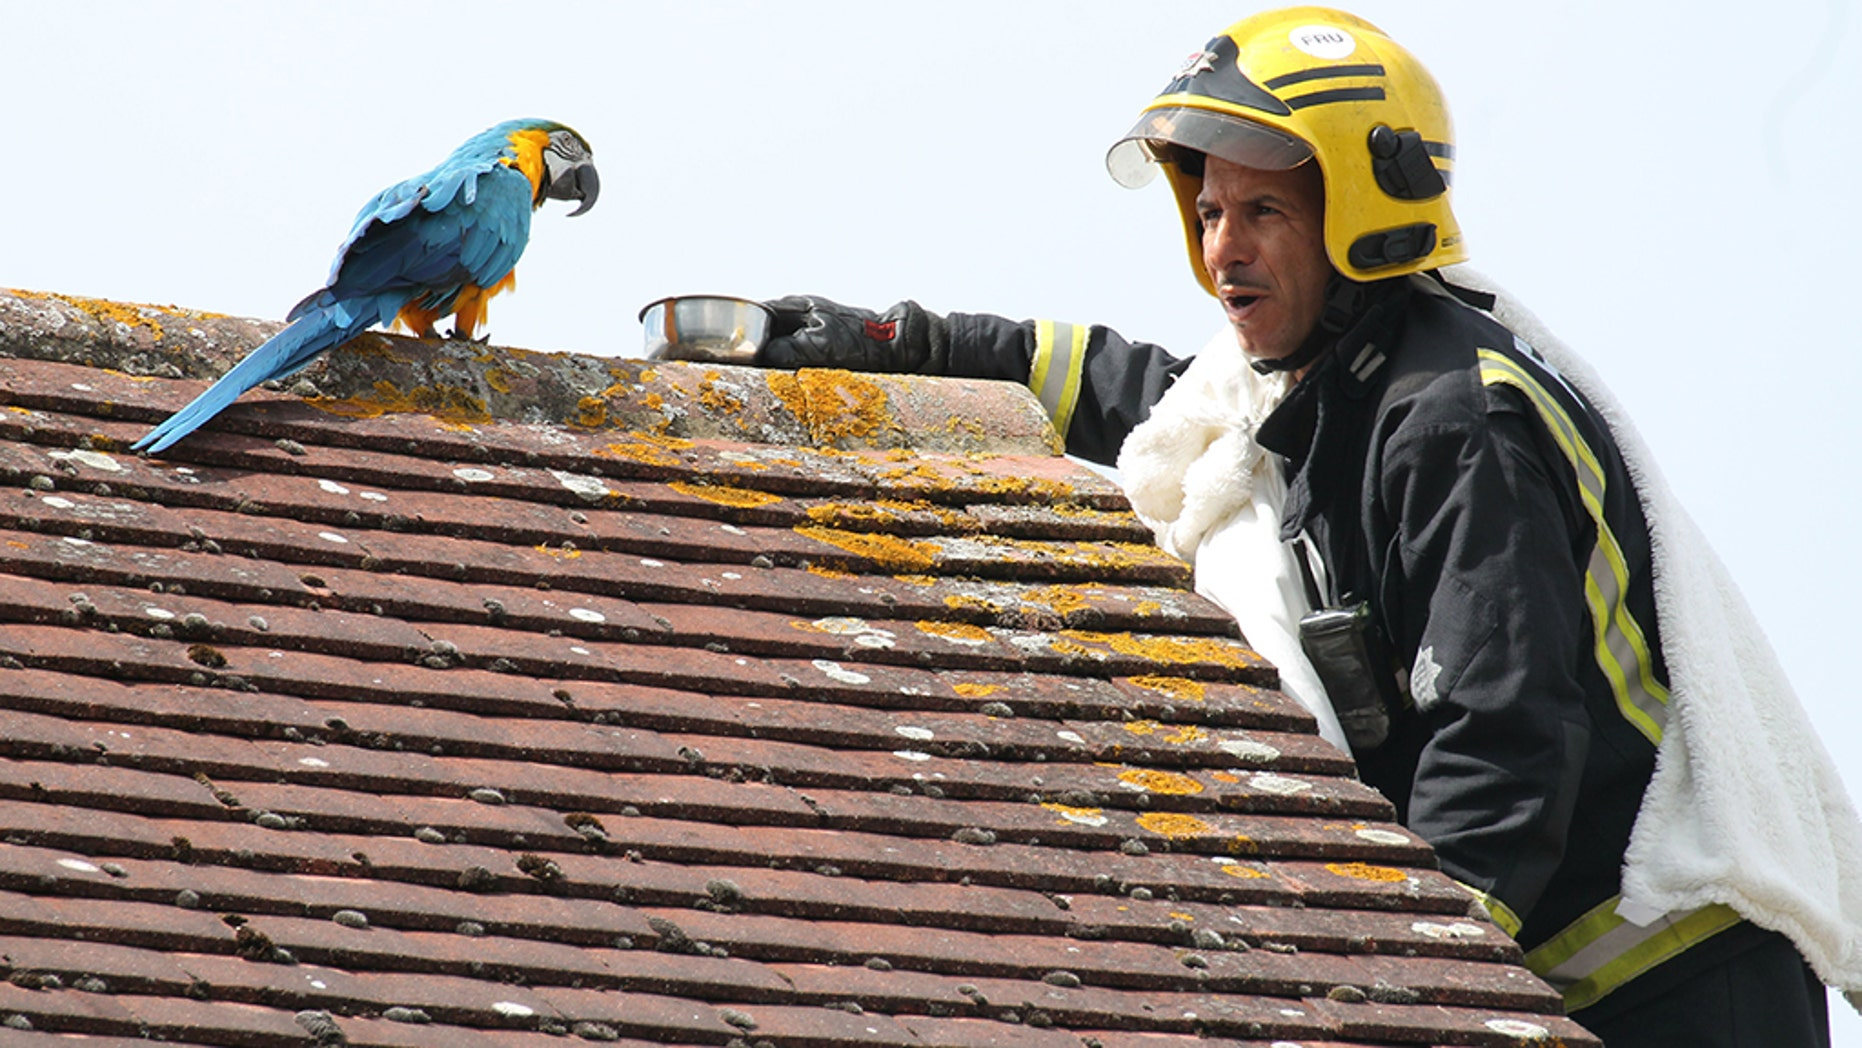 A parrot stuck on a roof for three days greeted firefighters sent to its aid with a four-letter tirade.